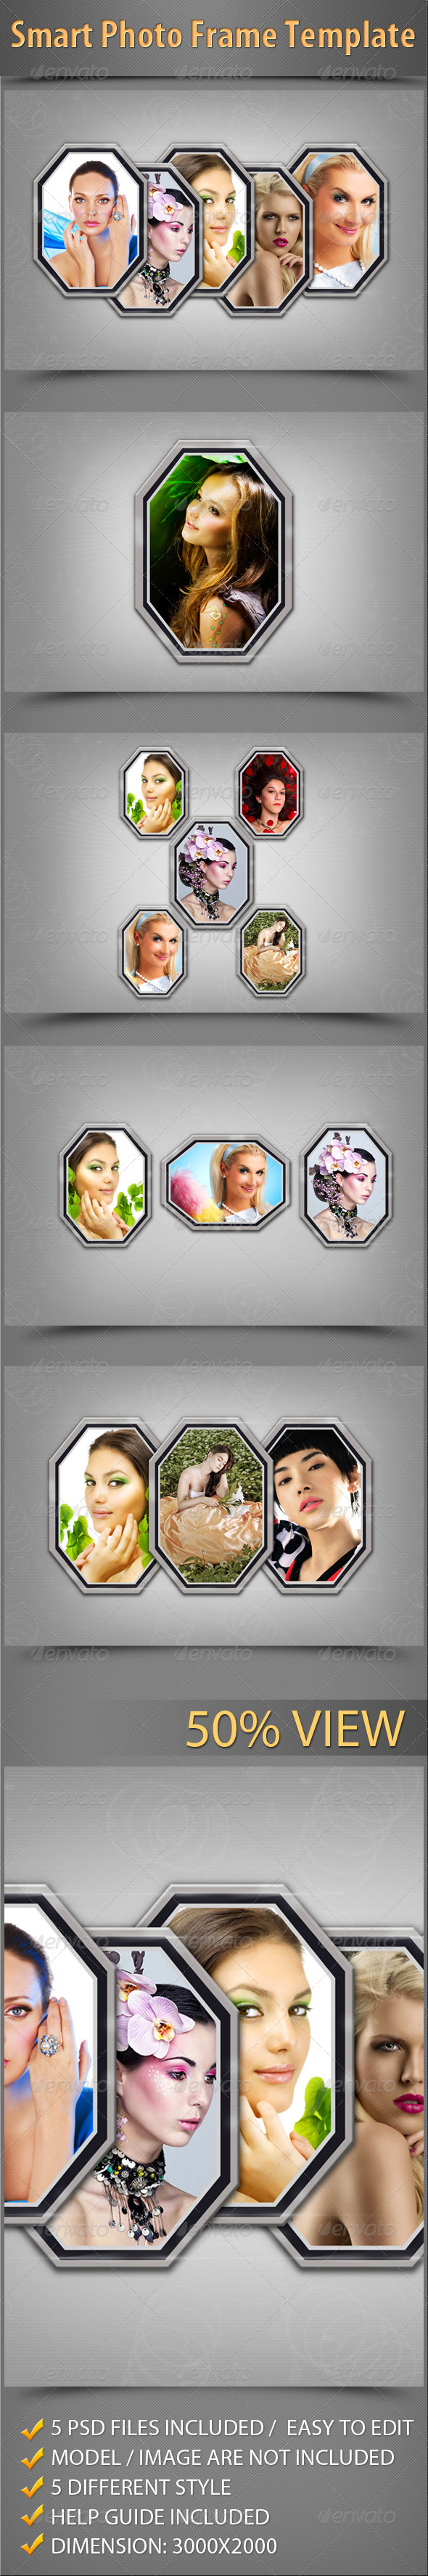 GraphicRiver Smart Photo Frame Template 5576724